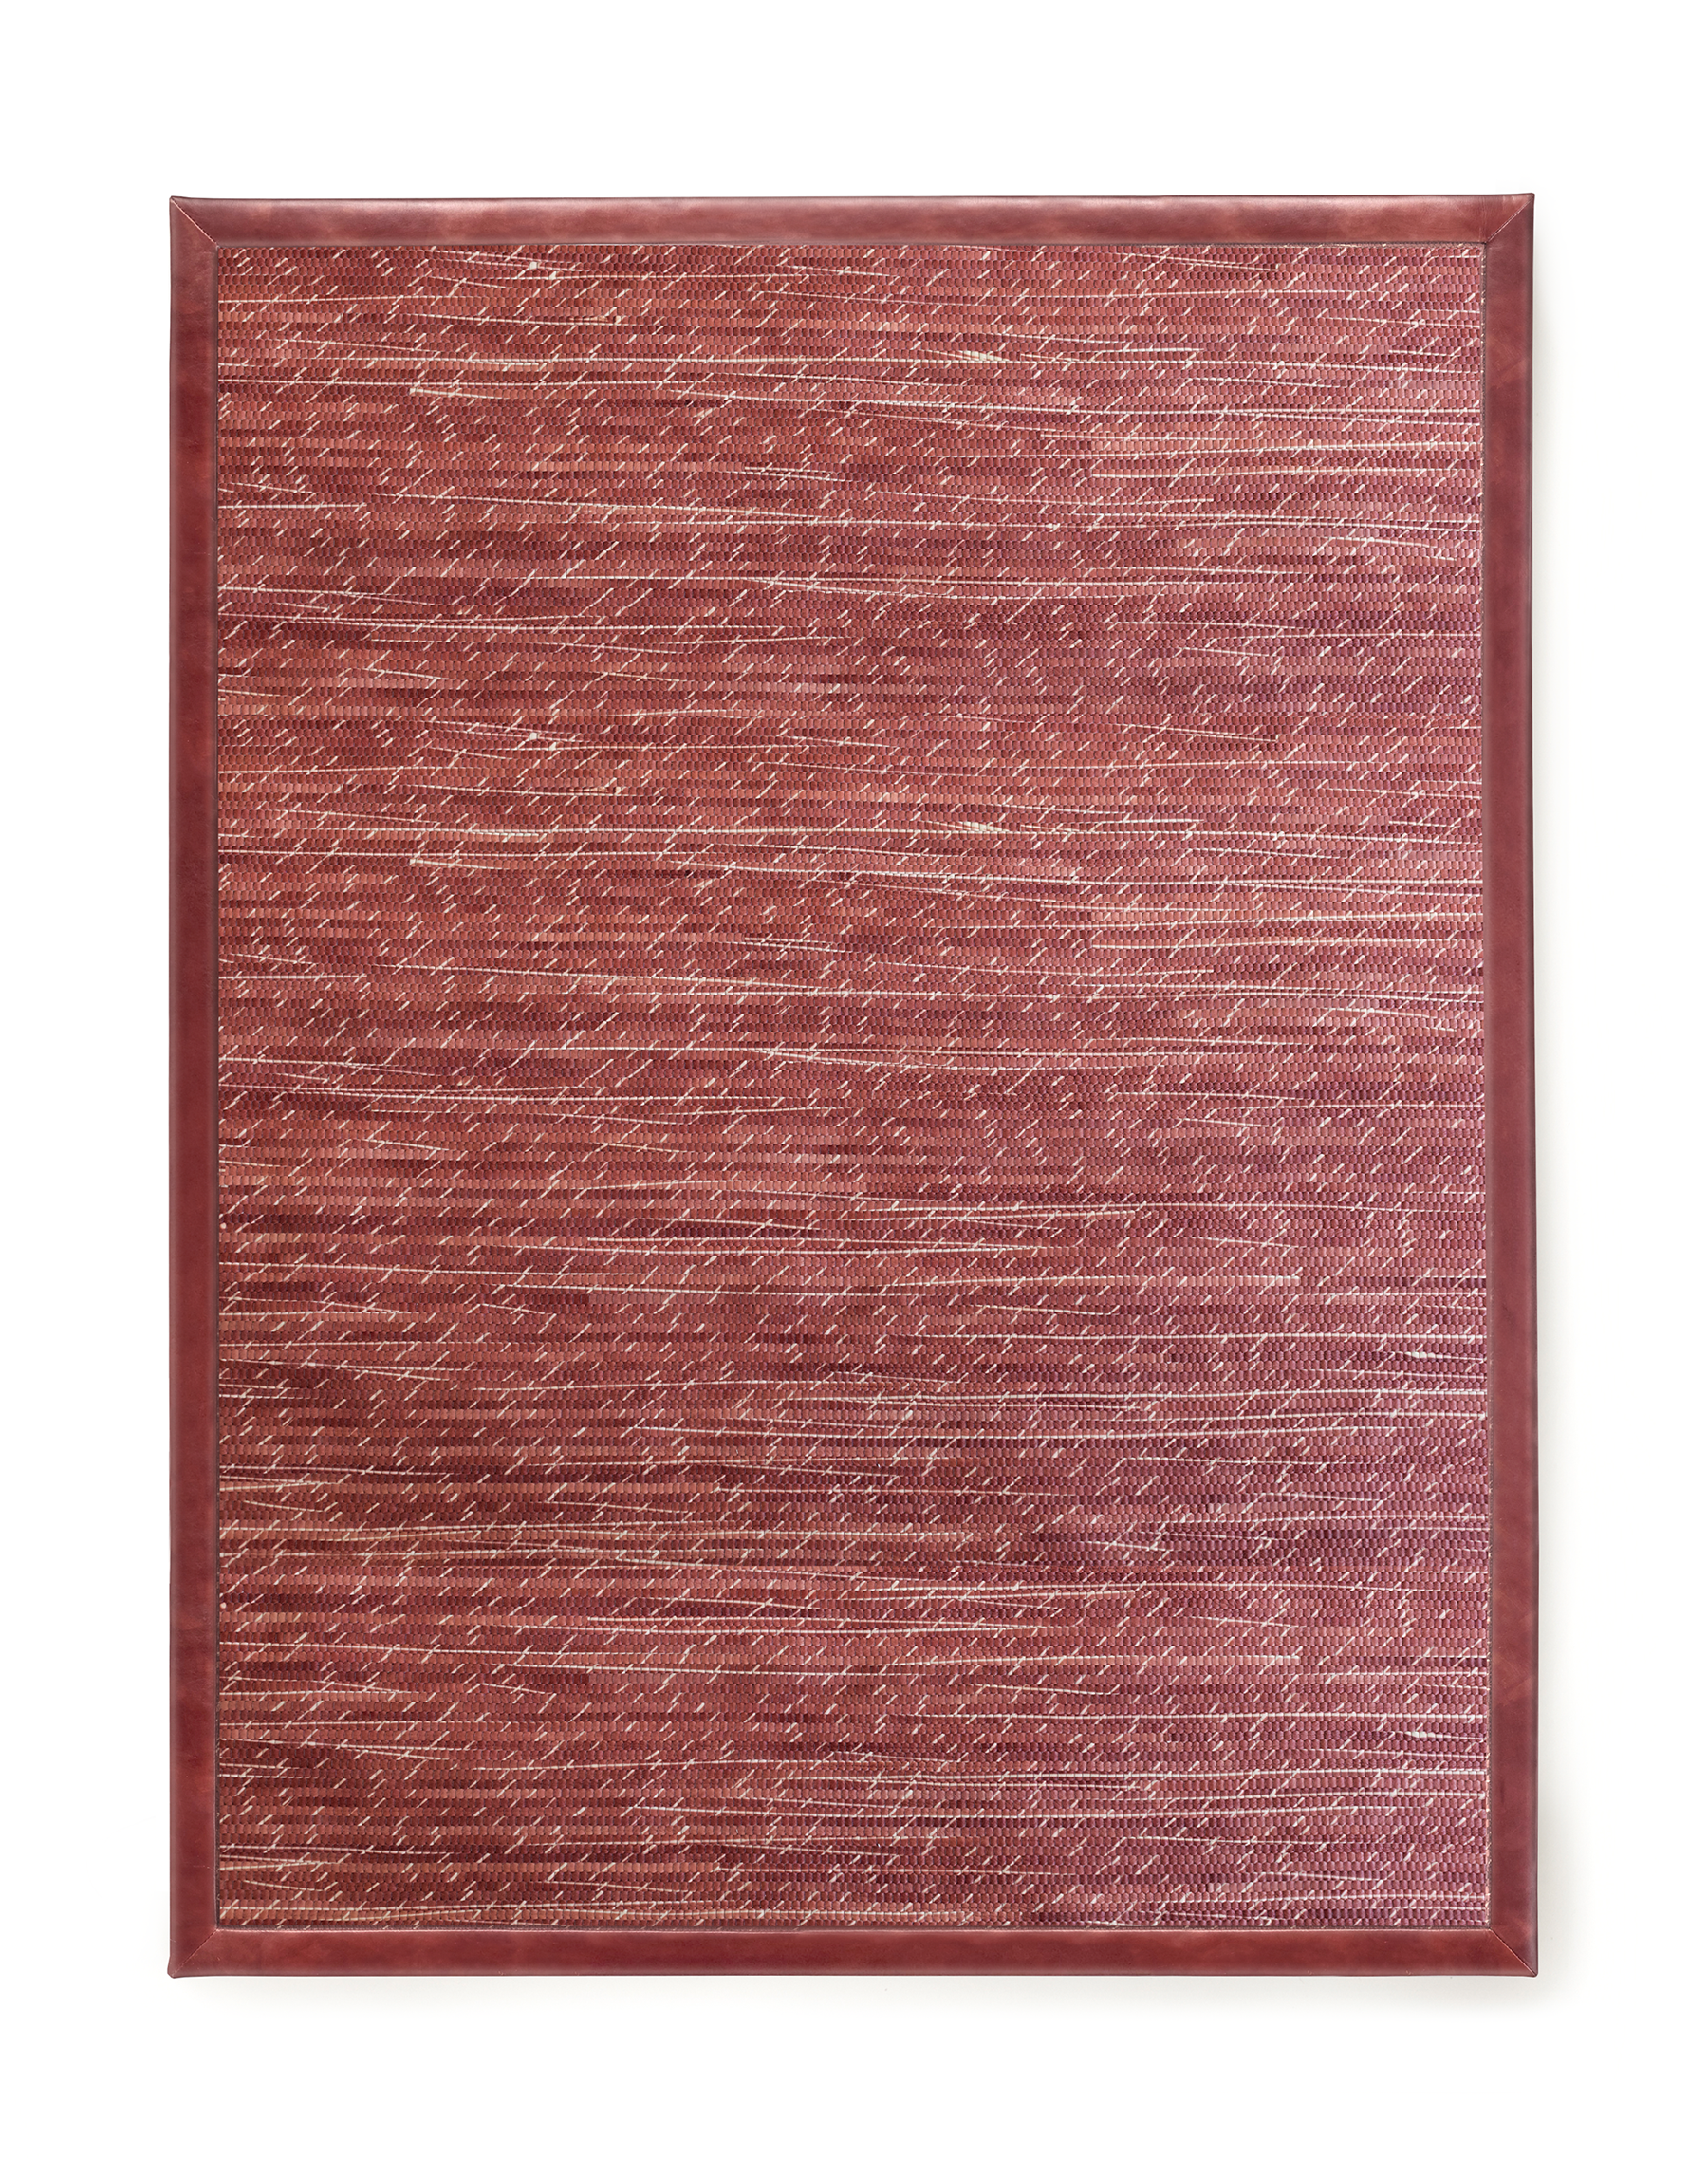 AVO_Woven-Leather-Rug_Bound-Edge_Mist.png